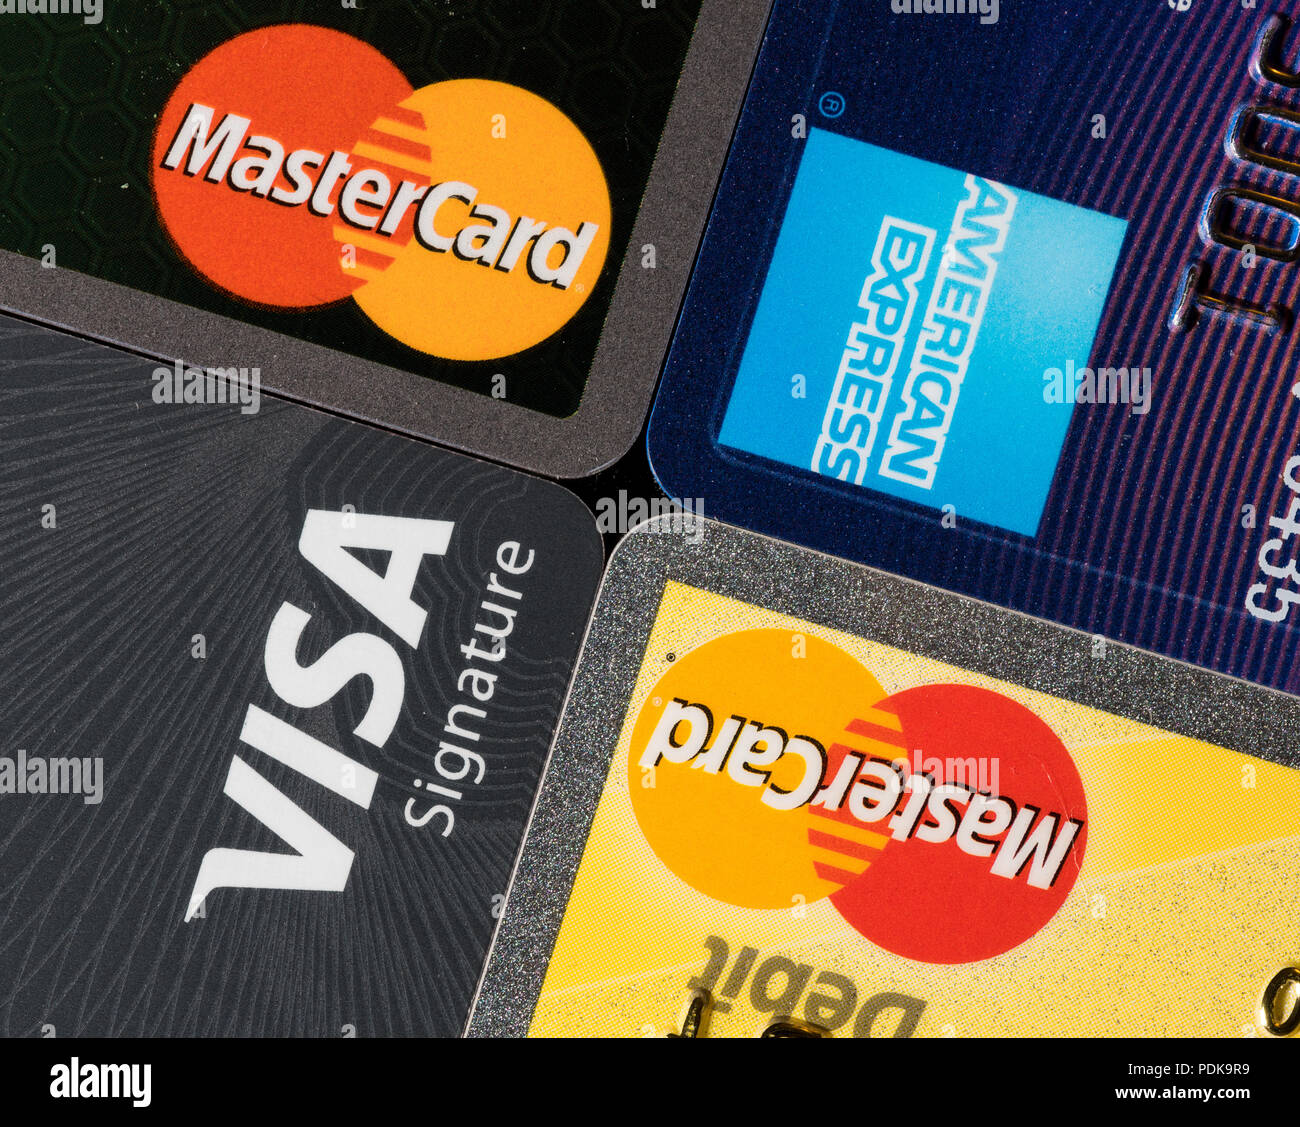 Minimum interest charge is $1.50. Close Up Of Credit Card Issuer Brands And Logos Stock Photo Alamy